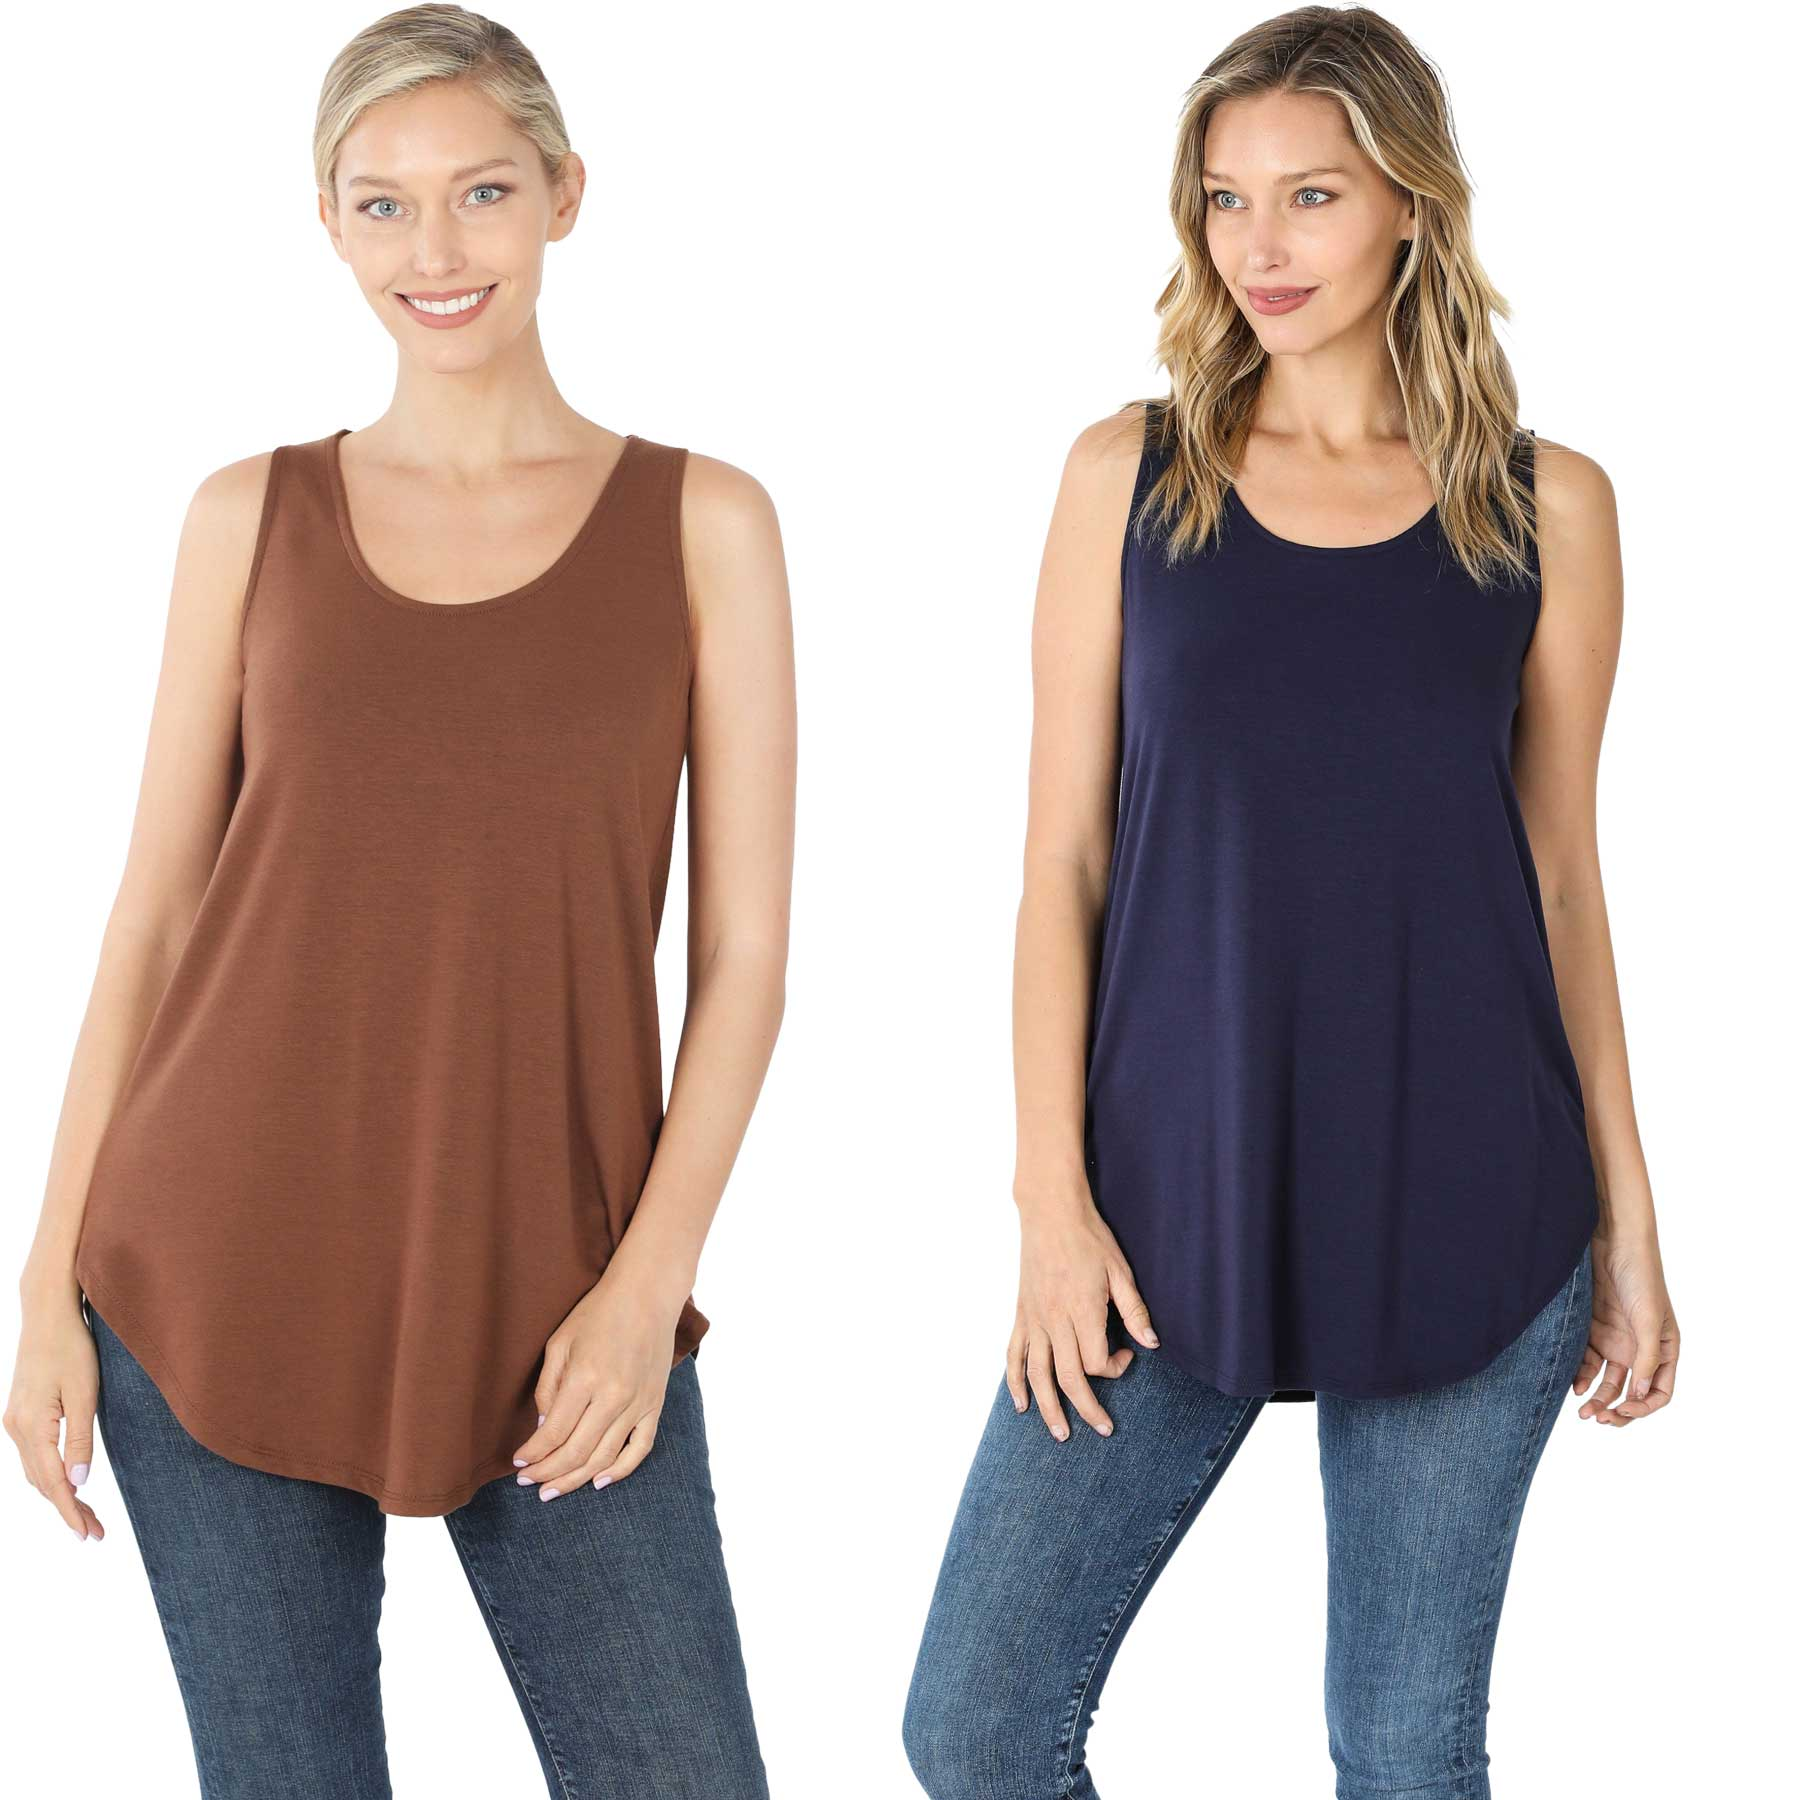 Tops - Sleeveless Round Hem Solids 2100